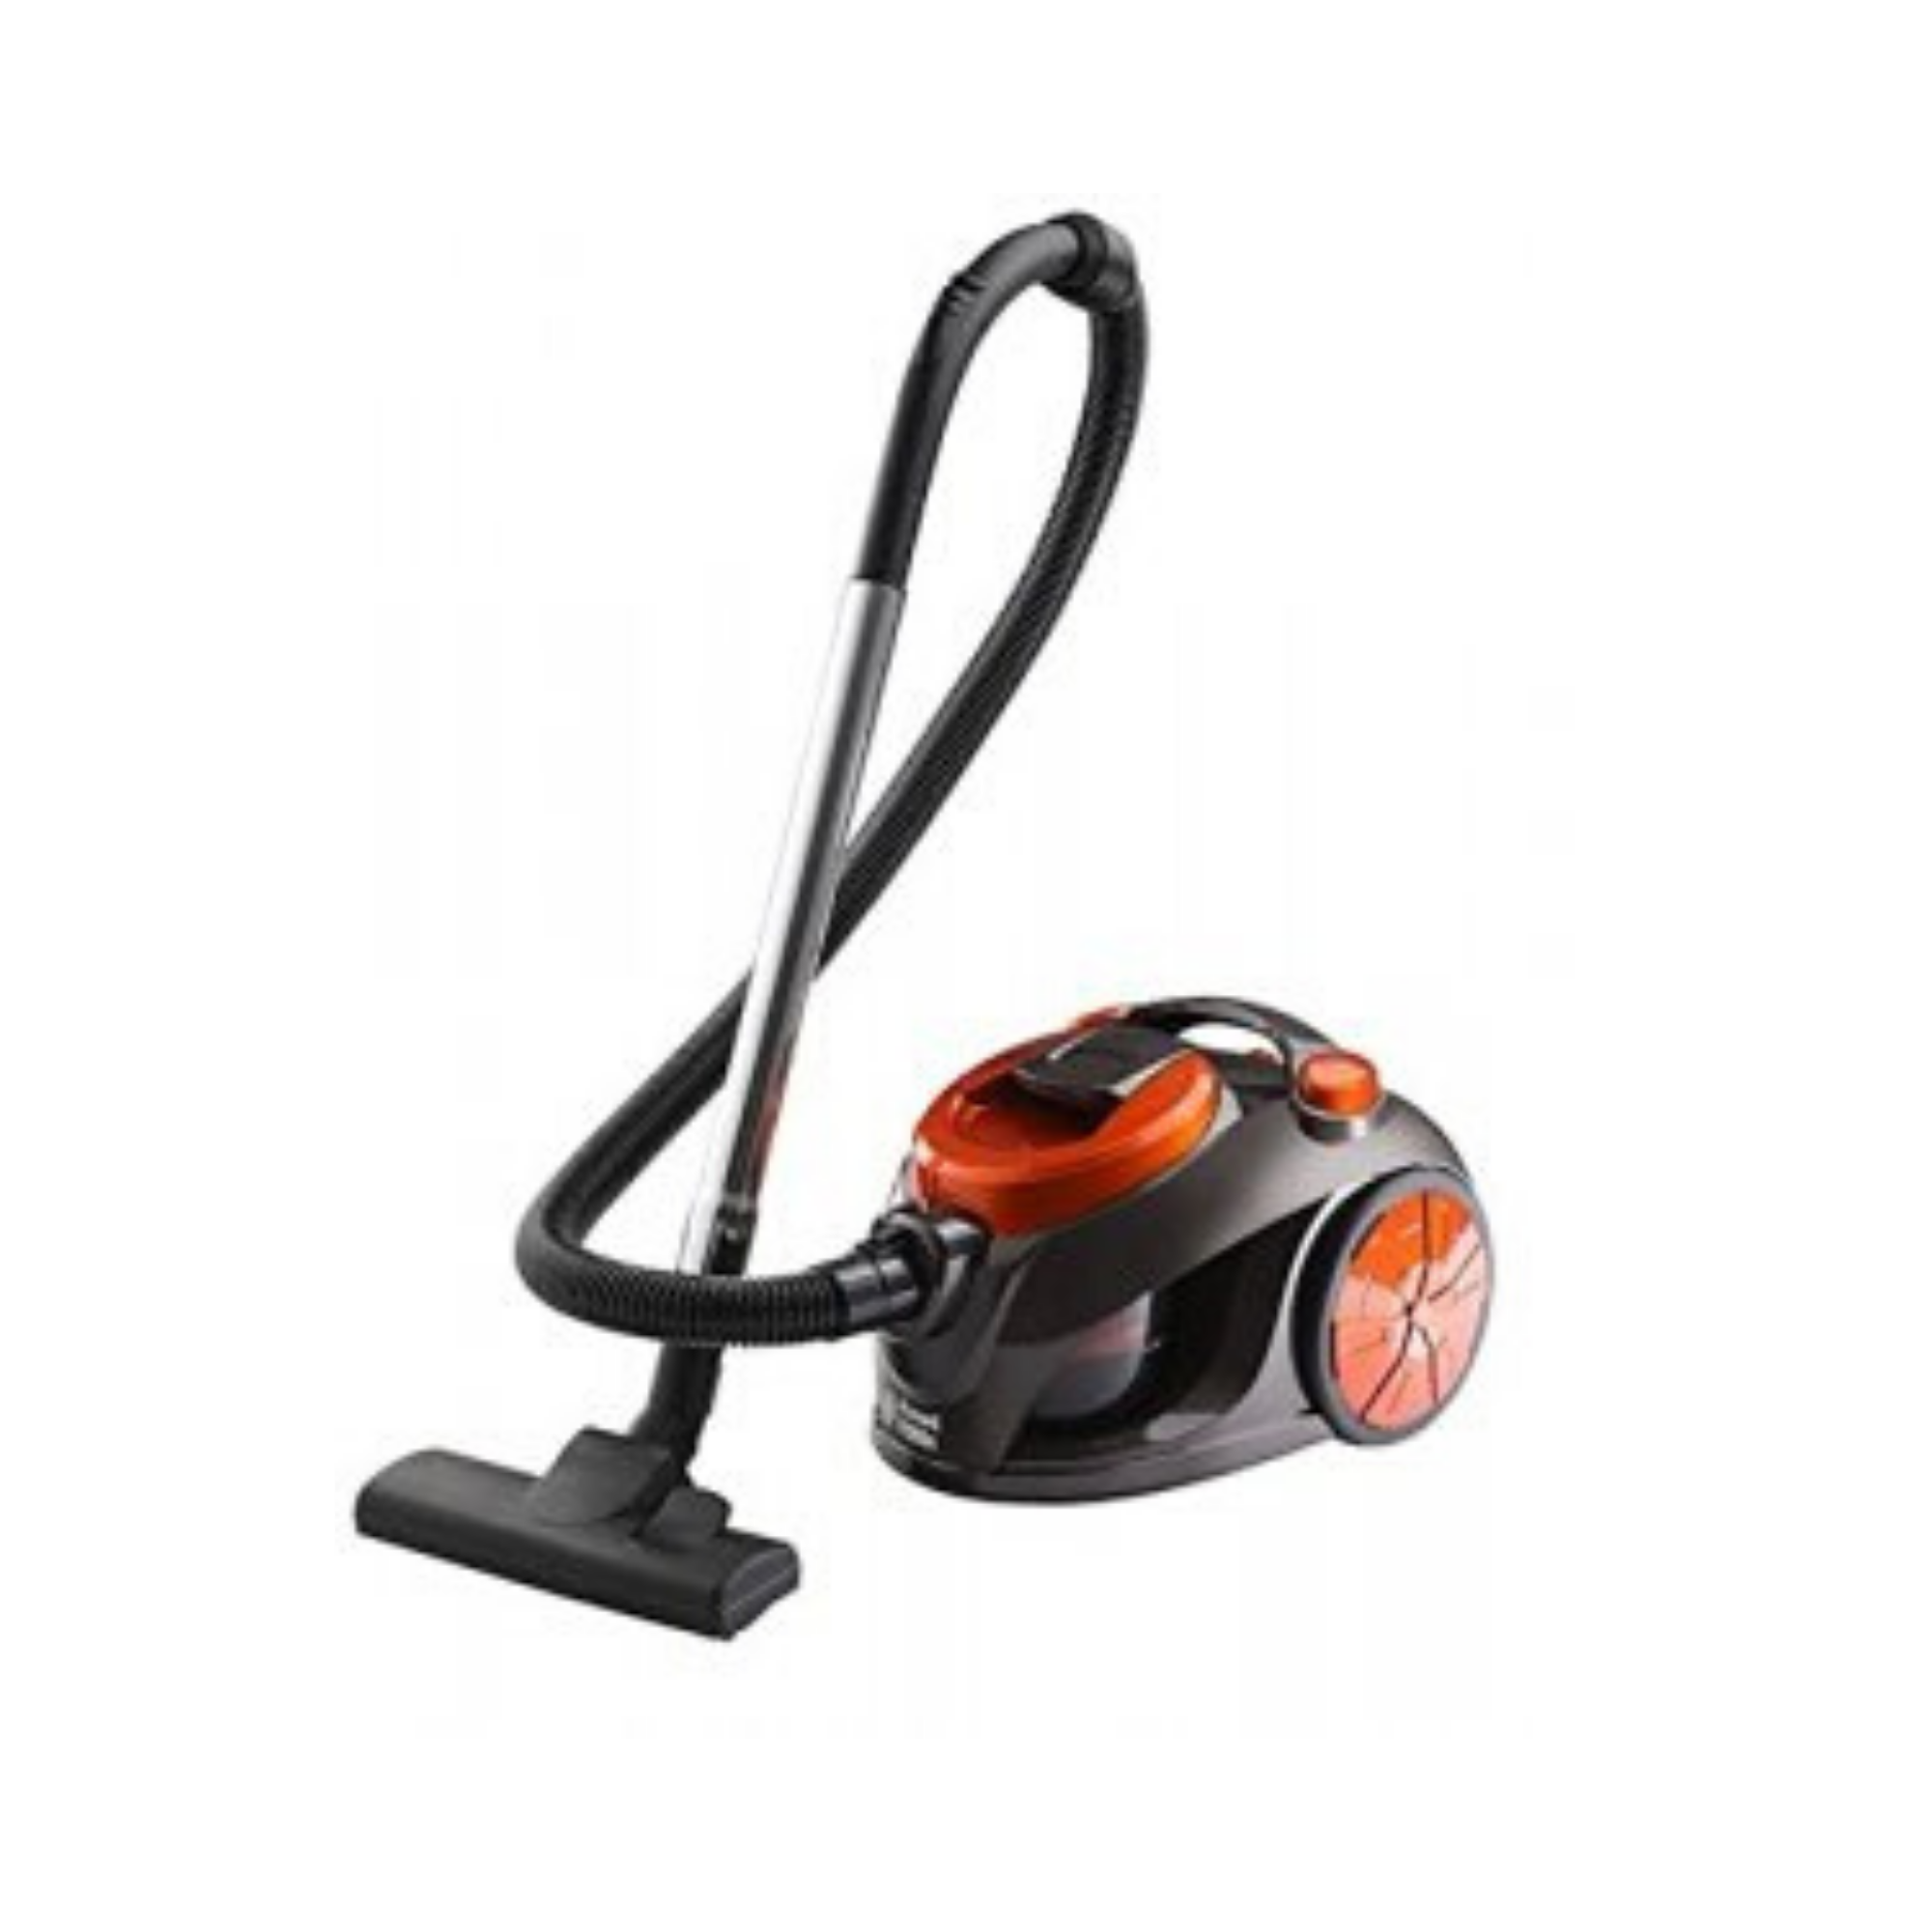 Russell Hobbs RVAC2000 Bagless Vacuum Cleaner (Multicolour)